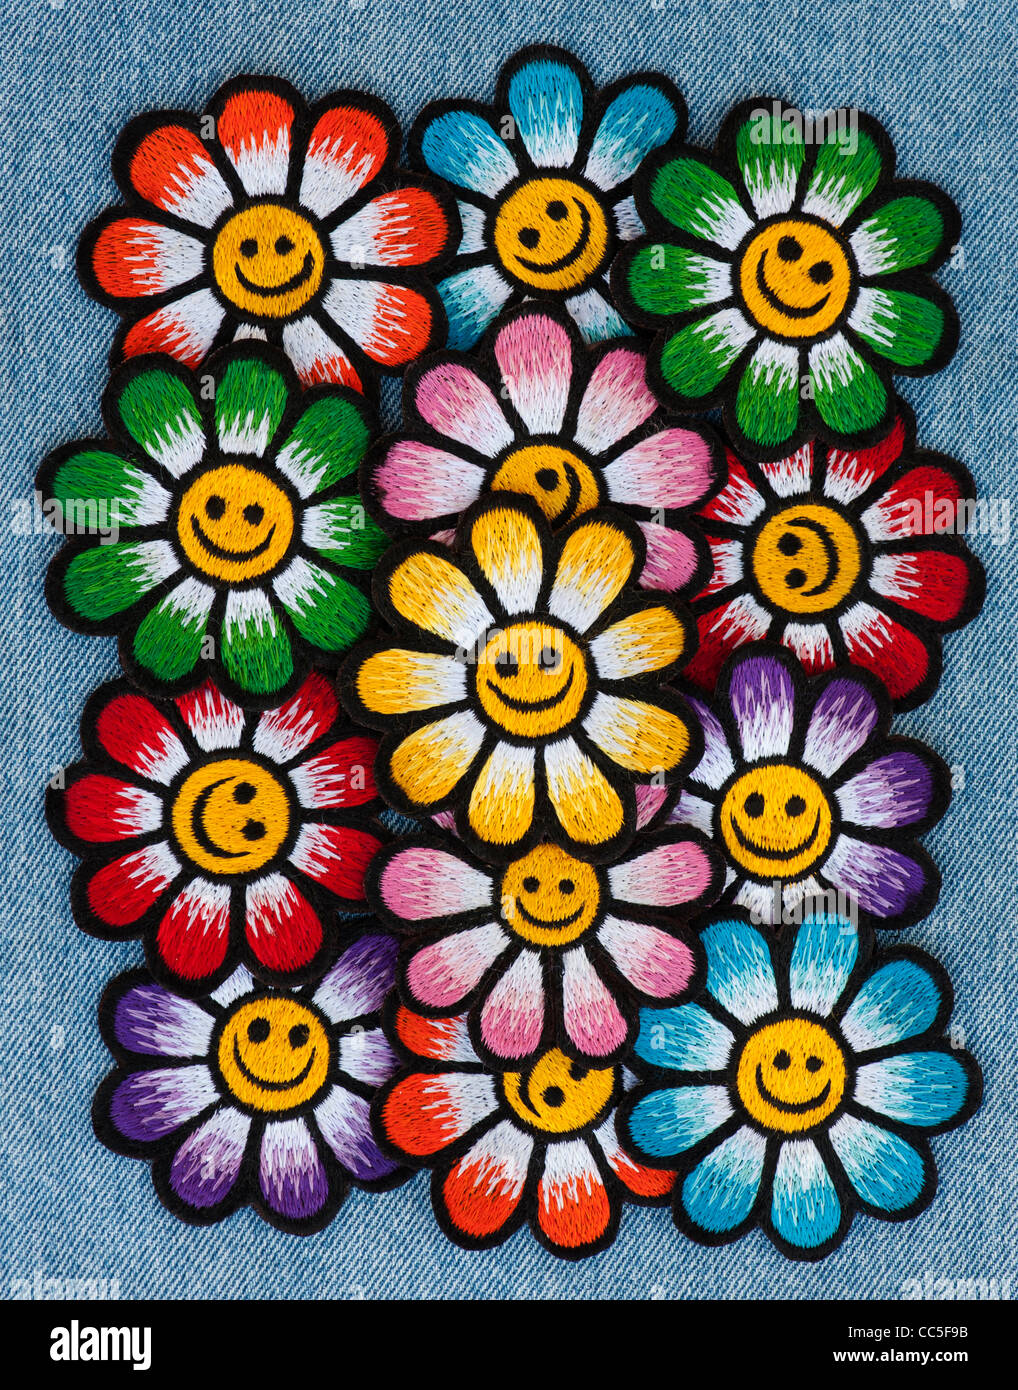 Embroidery iron on patches of Multicoloured smiley face flowers on a denim jean background - Stock Image